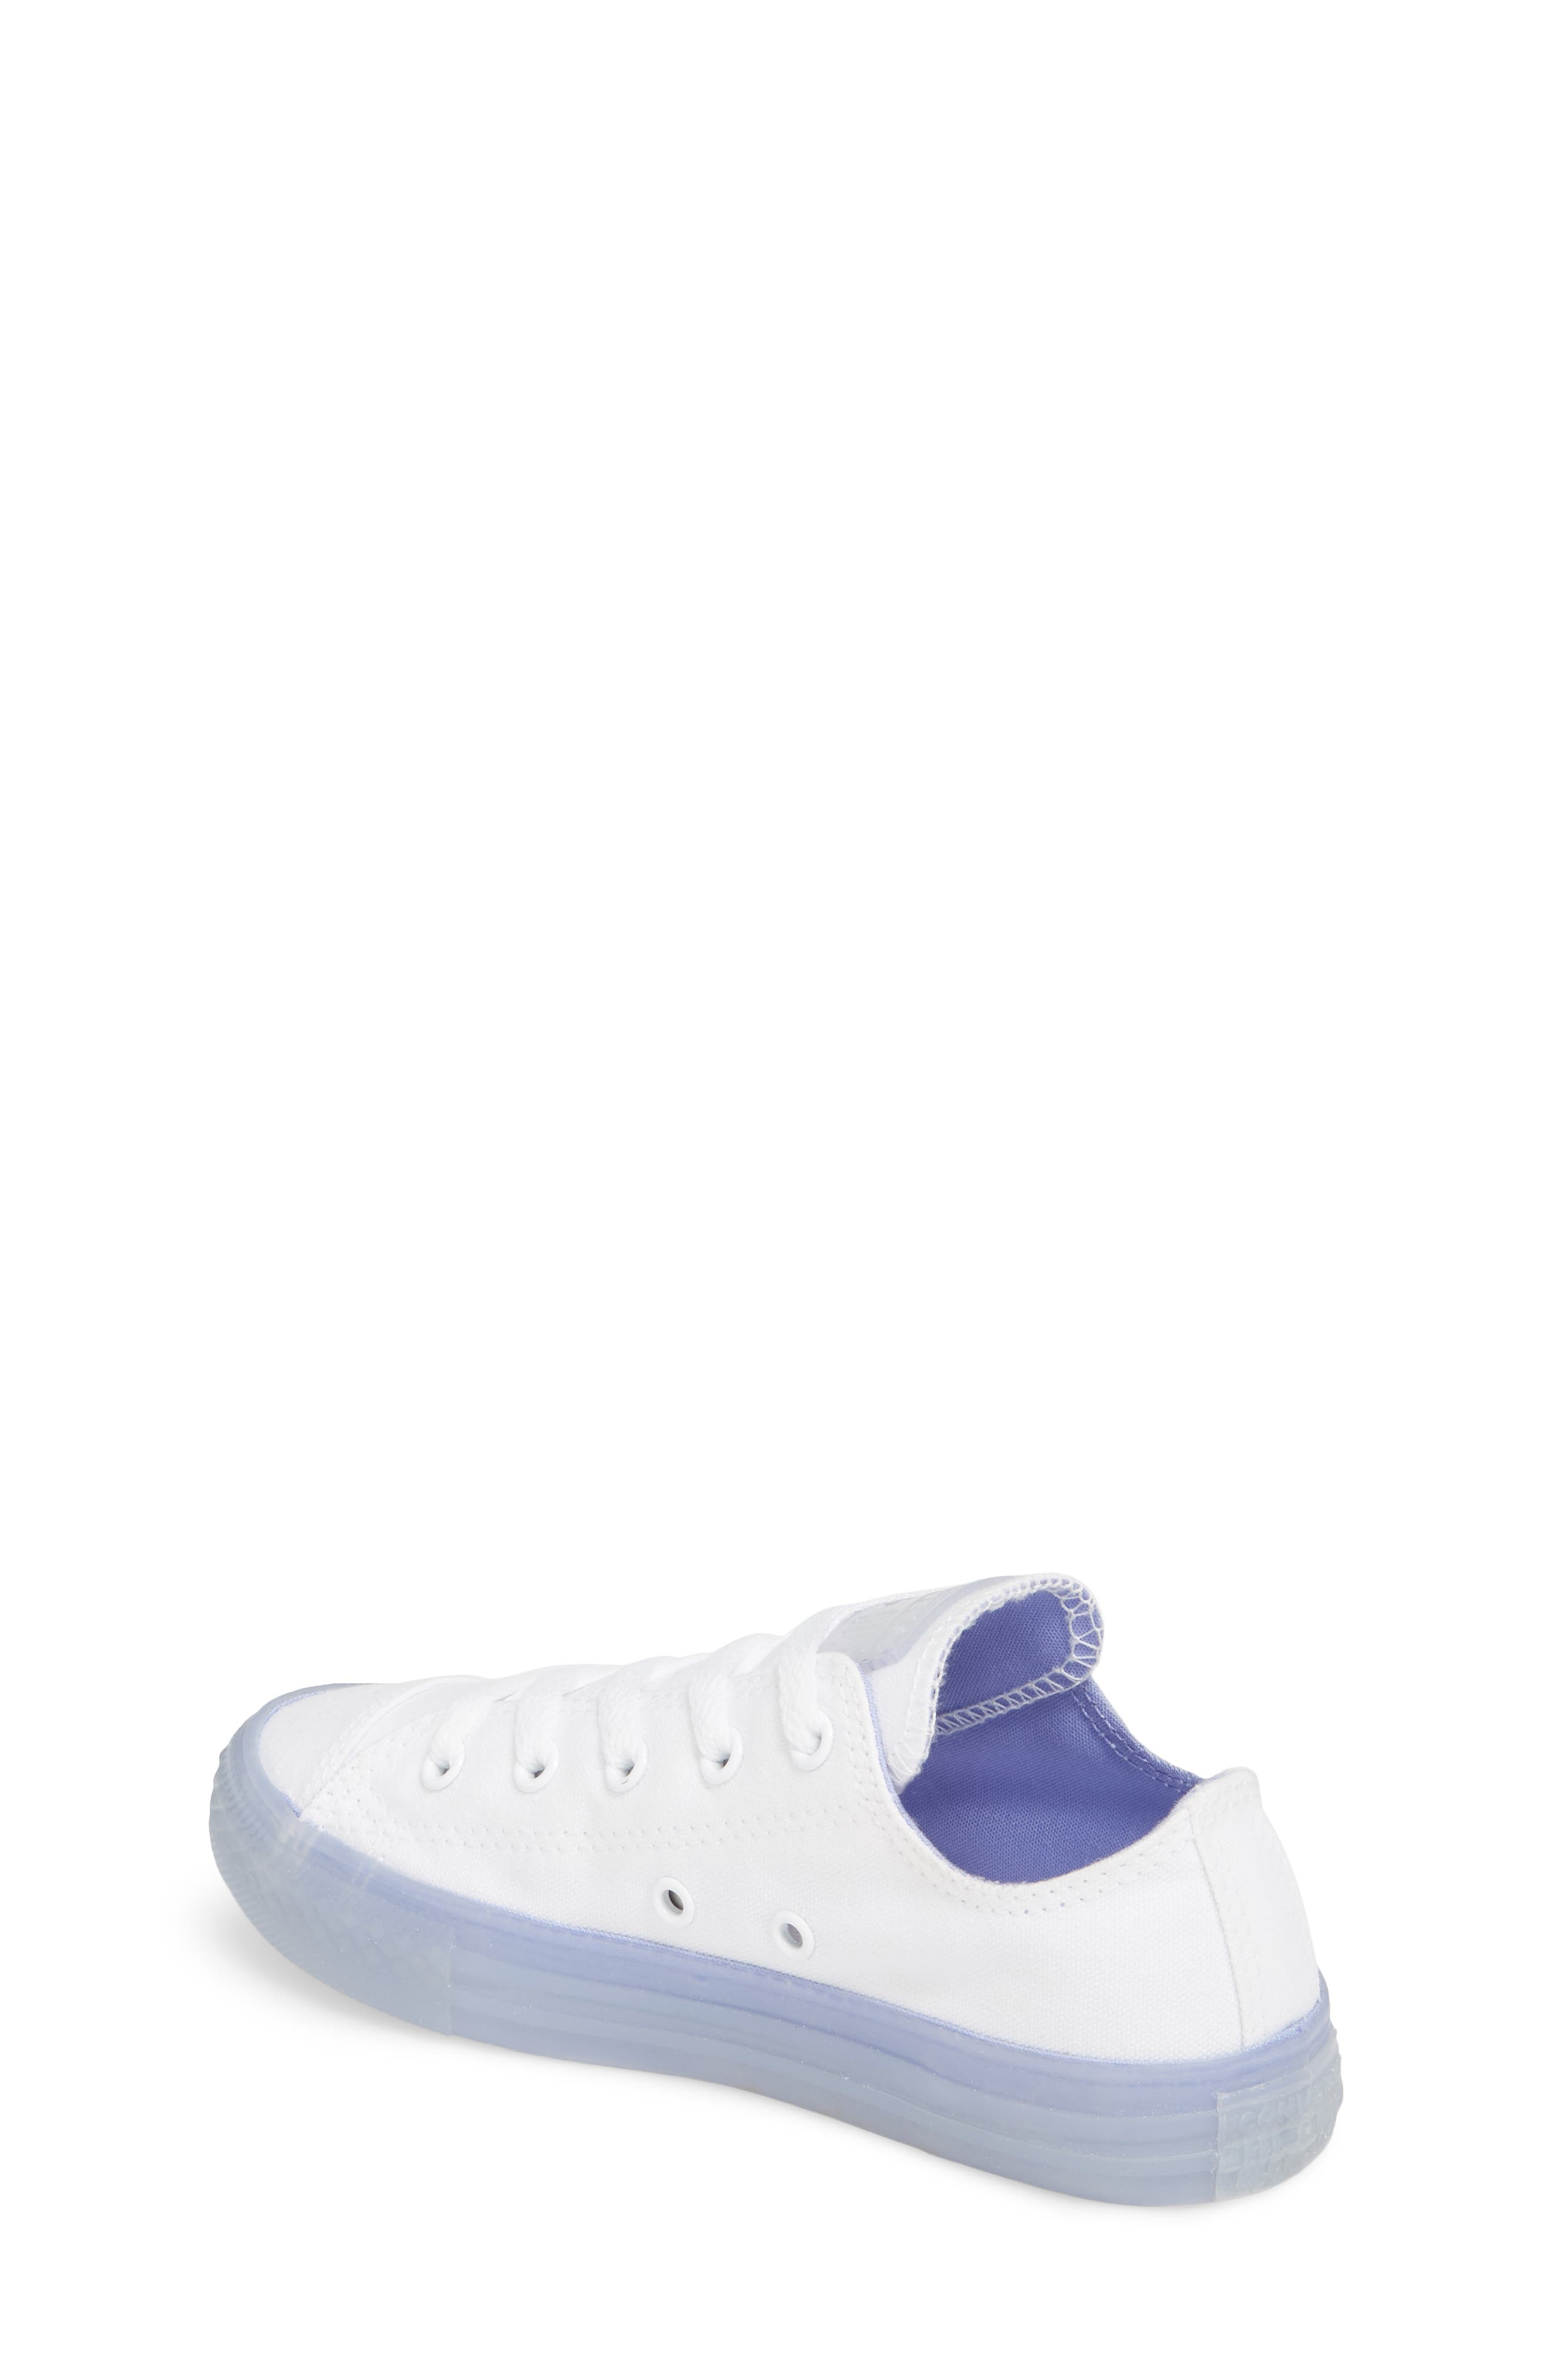 Chuck Taylor<sup>®</sup> All Star<sup>®</sup> Jelly Low Top Sneaker,                             Alternate thumbnail 2, color,                             Purple